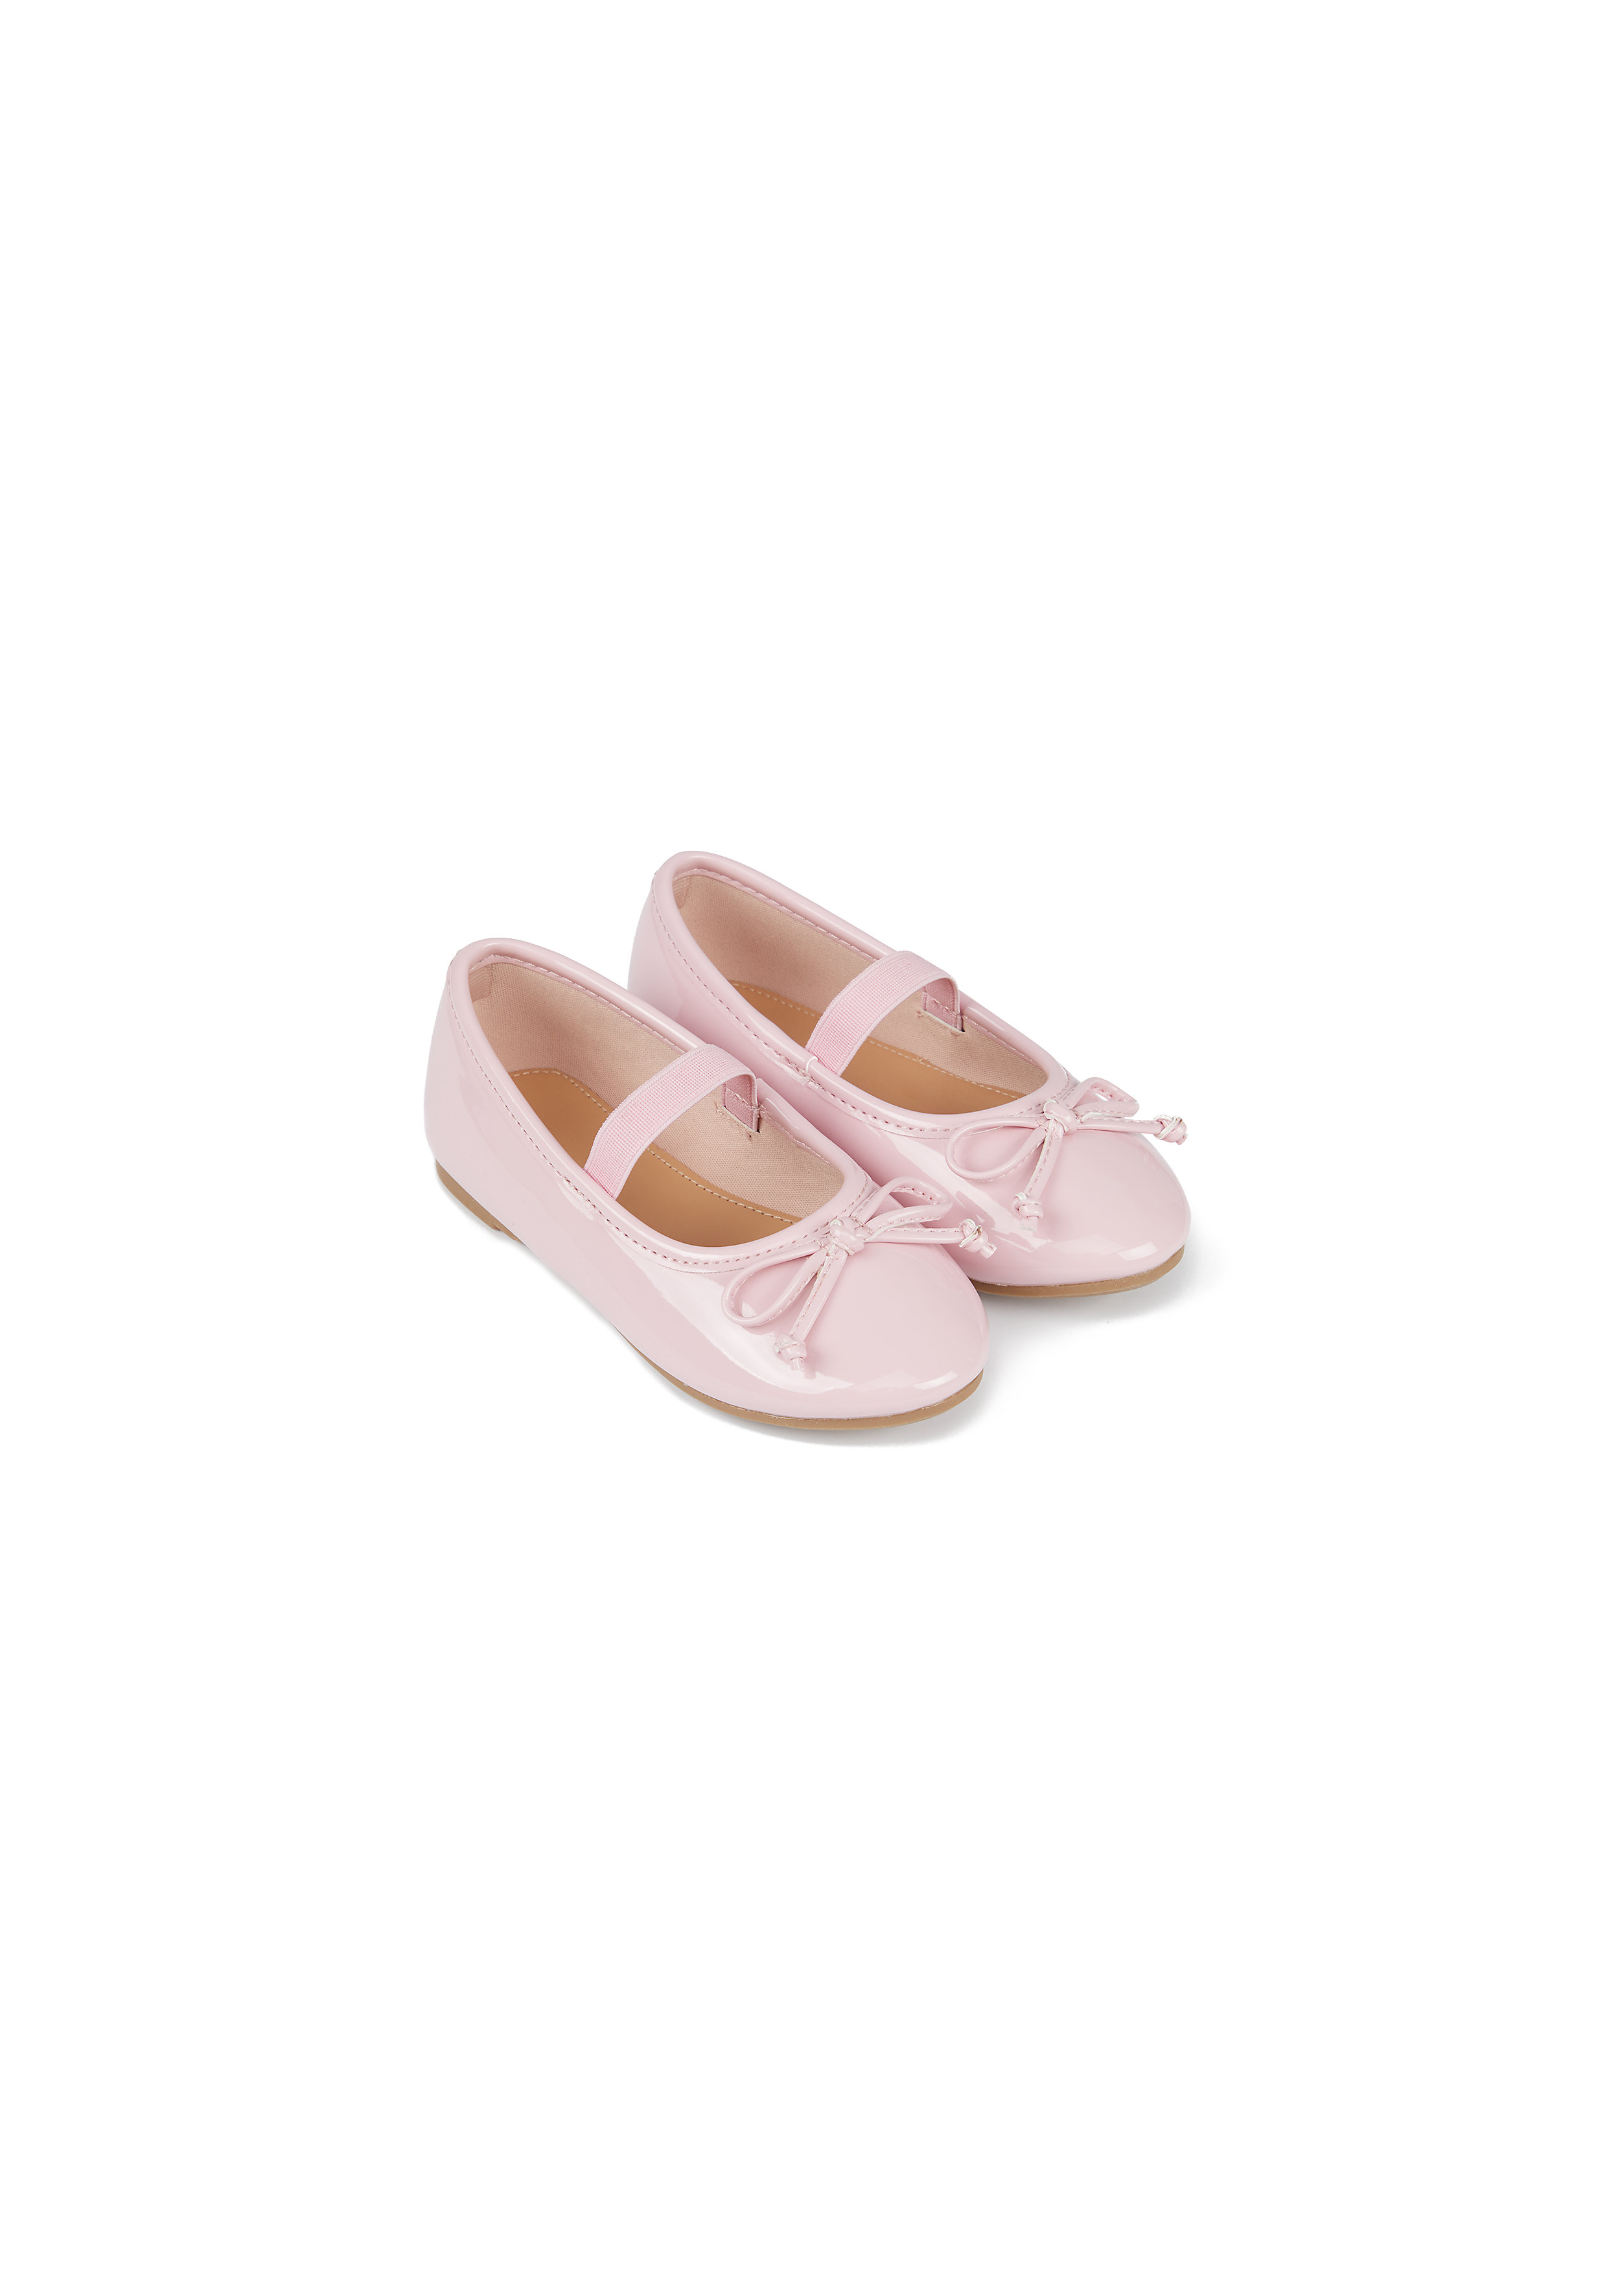 Mothercare | Girls Ballerina Shoes Bow Detail - Pink